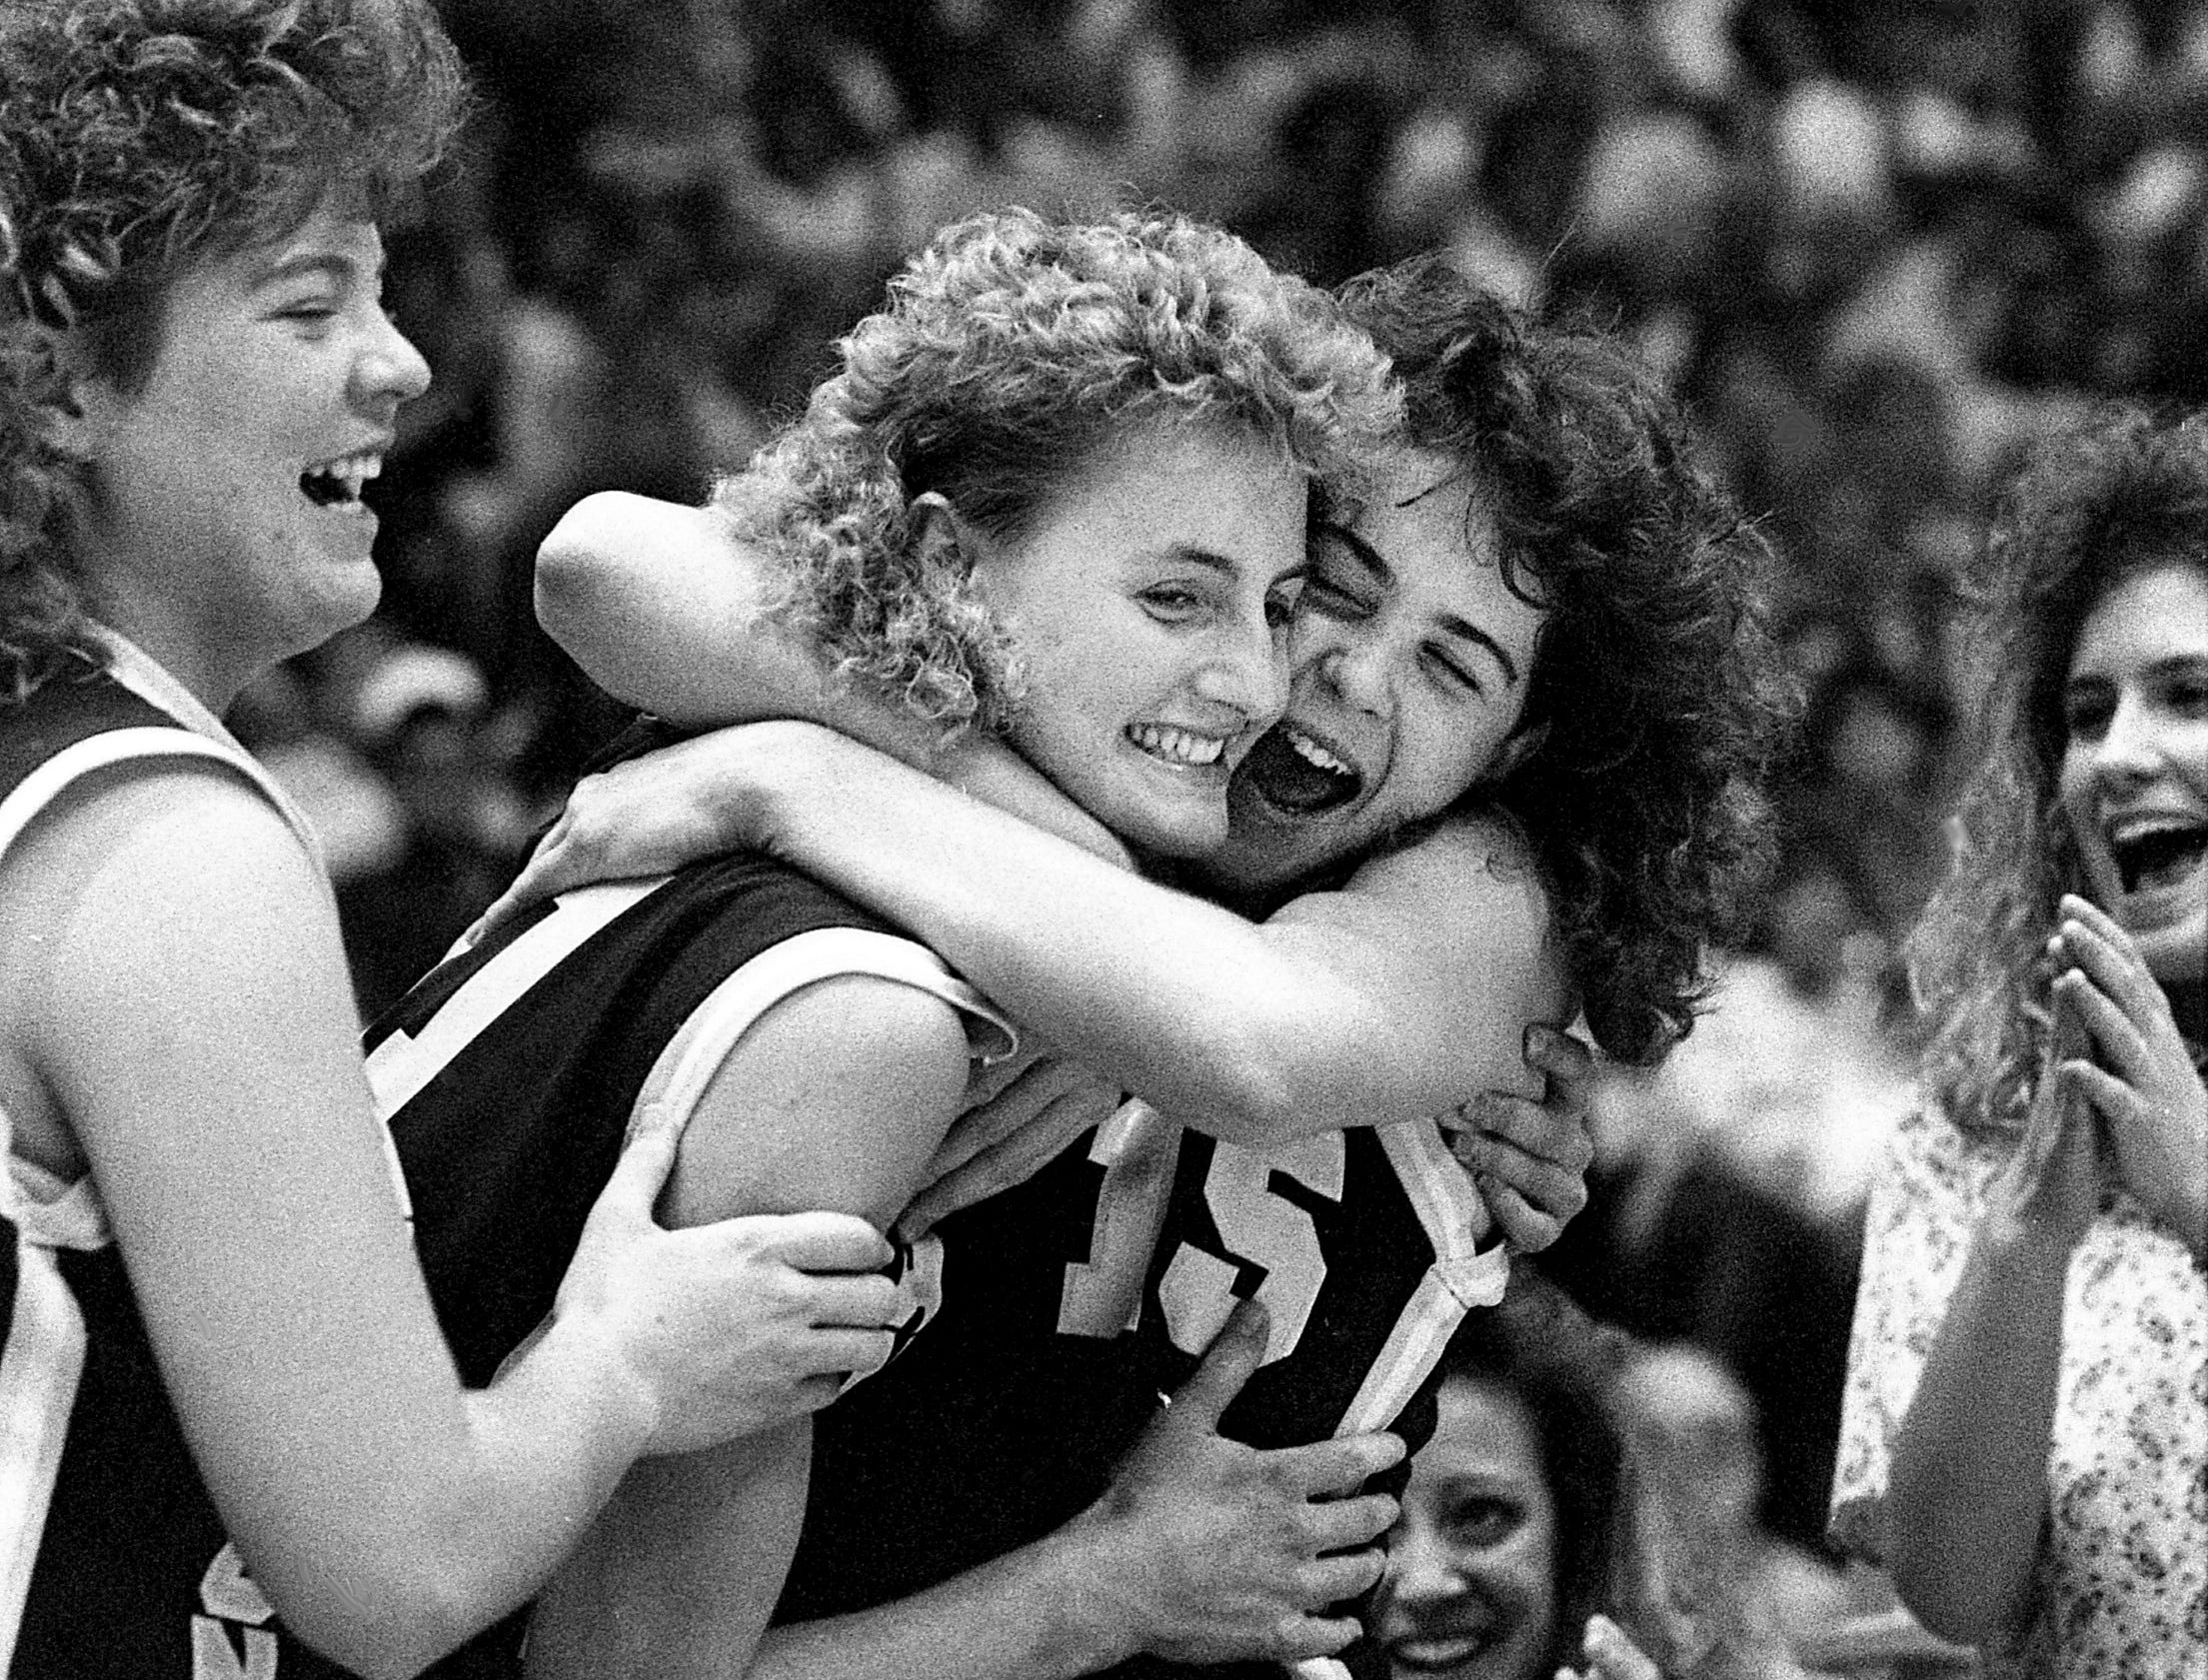 Cannon County High star Julie Powell, center, celebrates with teammates Charlotte Banks, left, and Catherine Reed after defeating Happy Valley High 51-46 in the TSSAA Class AA State Tournament at MTSU's Murphy Center in Murfreesboro on March 11, 1989. Cannon County had lost in the finals the past two years to South Greene High.